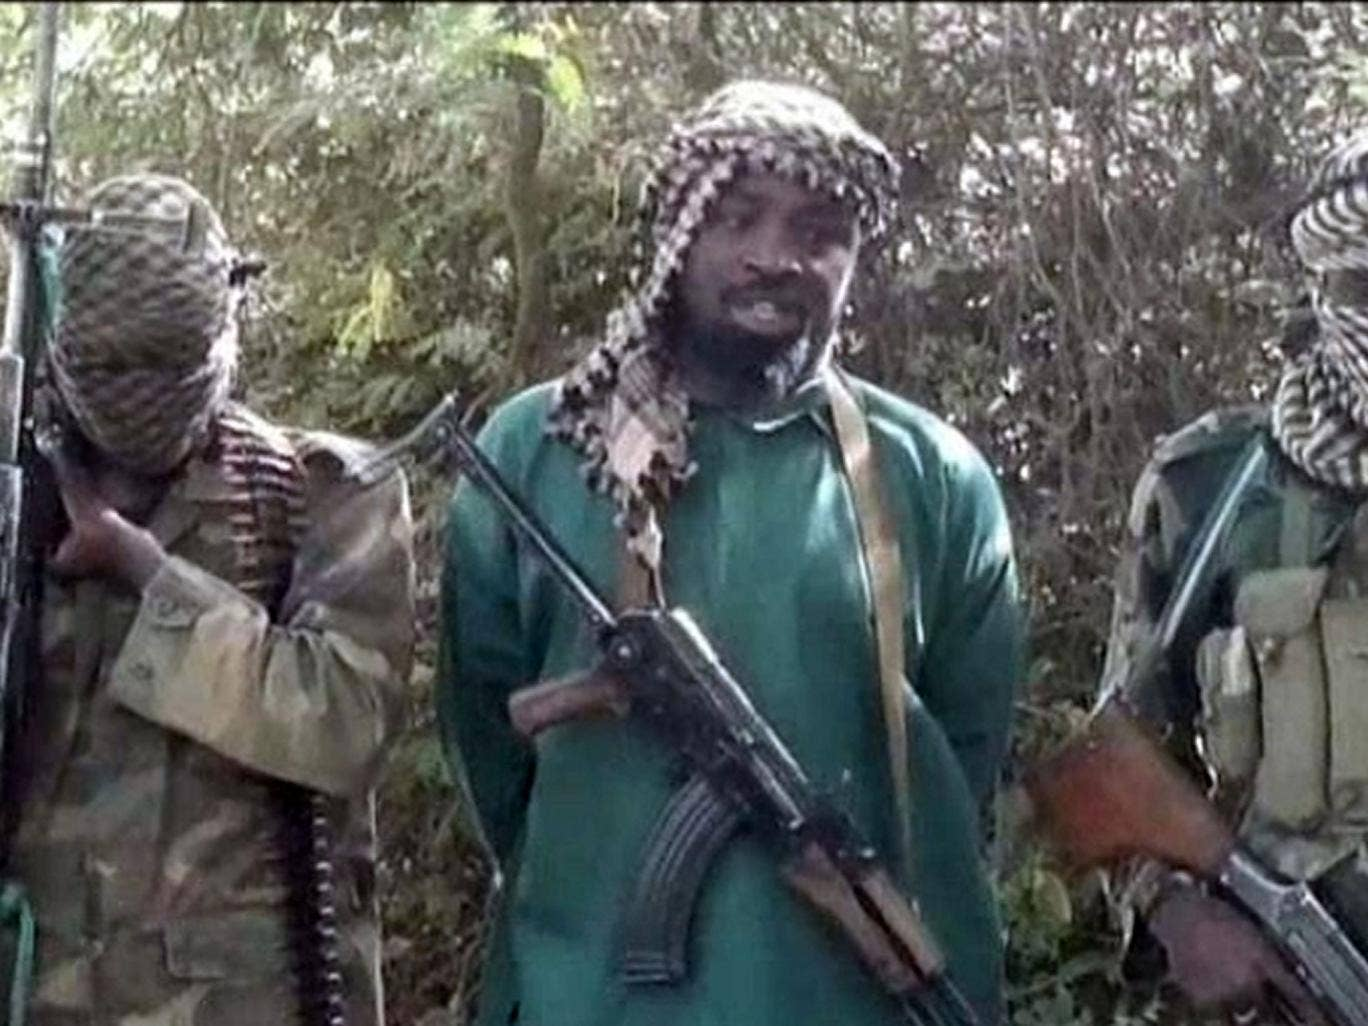 Boko Haram has fought against the government since 2009, demanding Sharia law